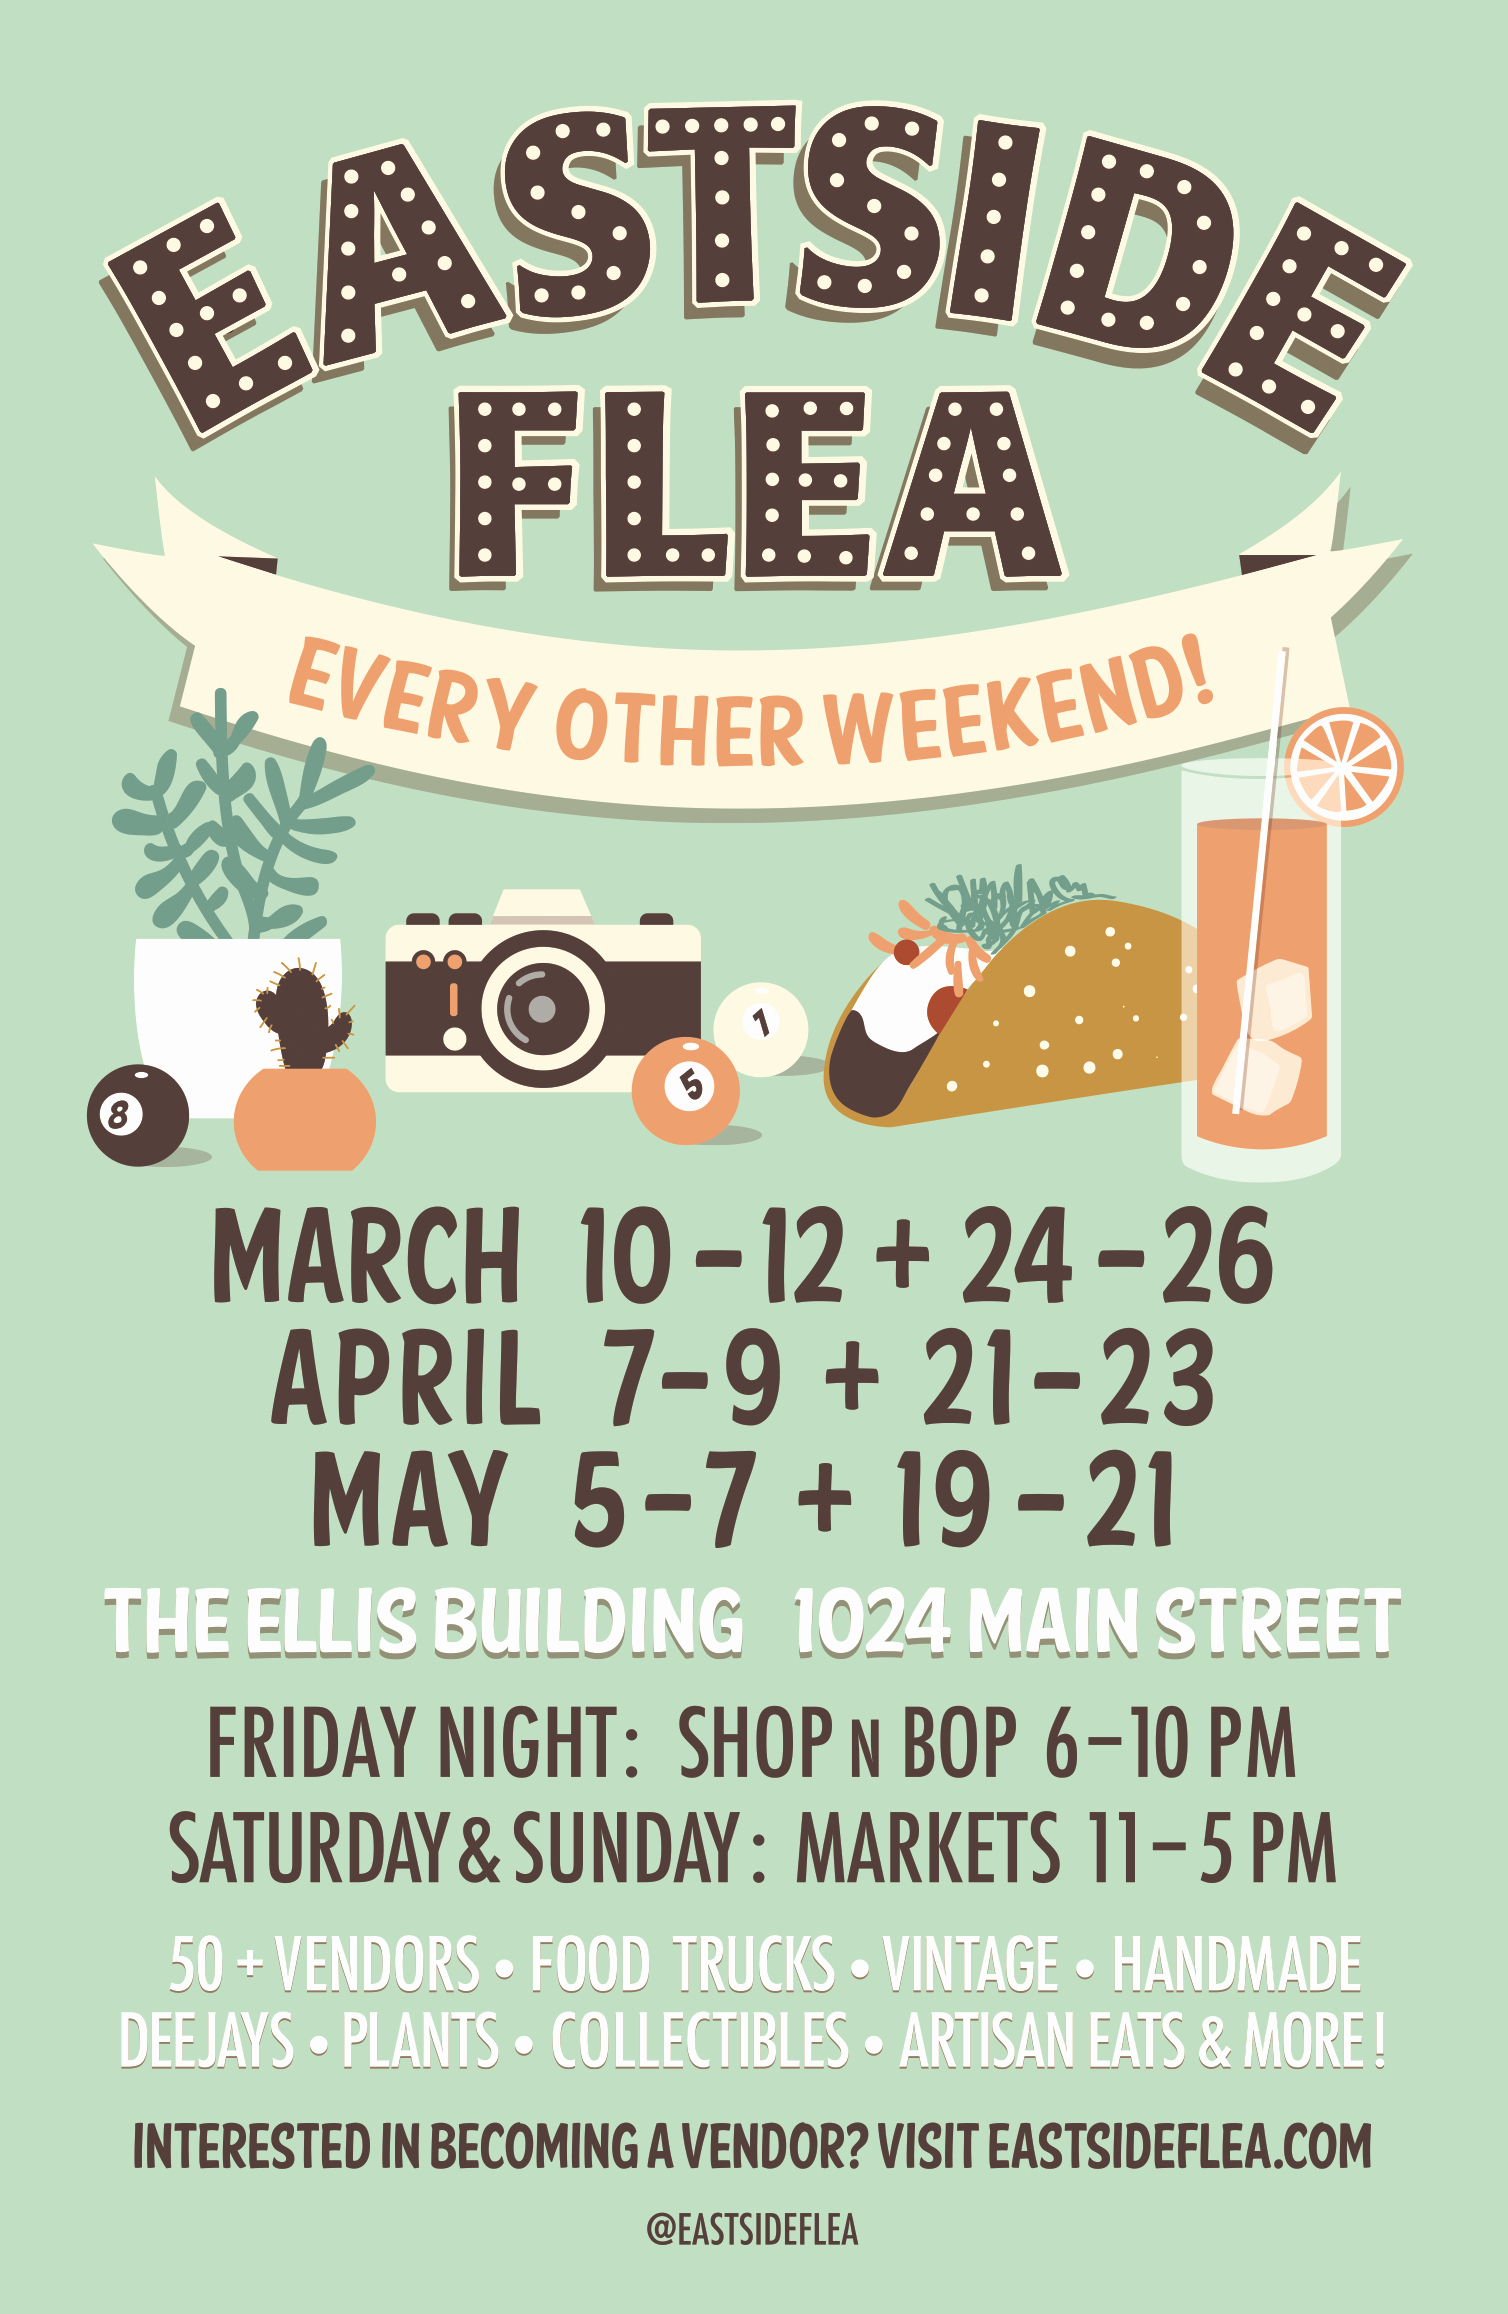 Flea Market Flyer Template Free Elegant Poster Design for the Eastside Flea Spring Markets